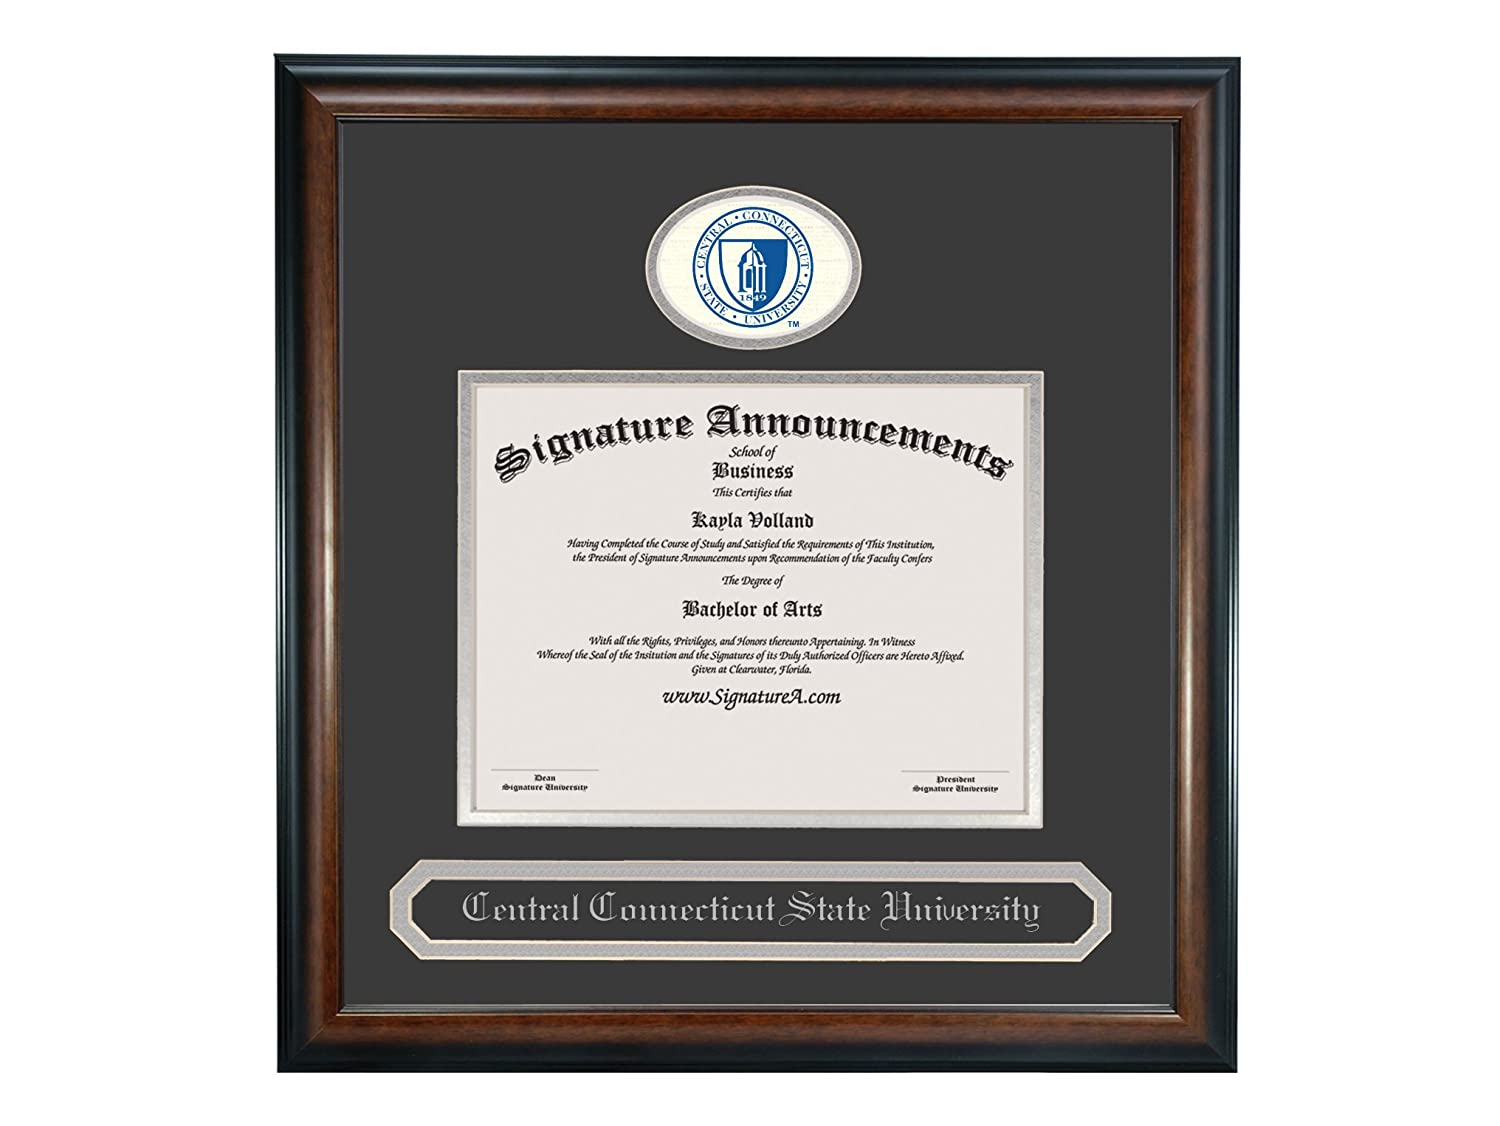 Signature Announcements Central Connecticut State University Undergraduate 16 x 16 Matte Mahogany Sculpted Foil Seal /& Name Graduation Diploma Frame